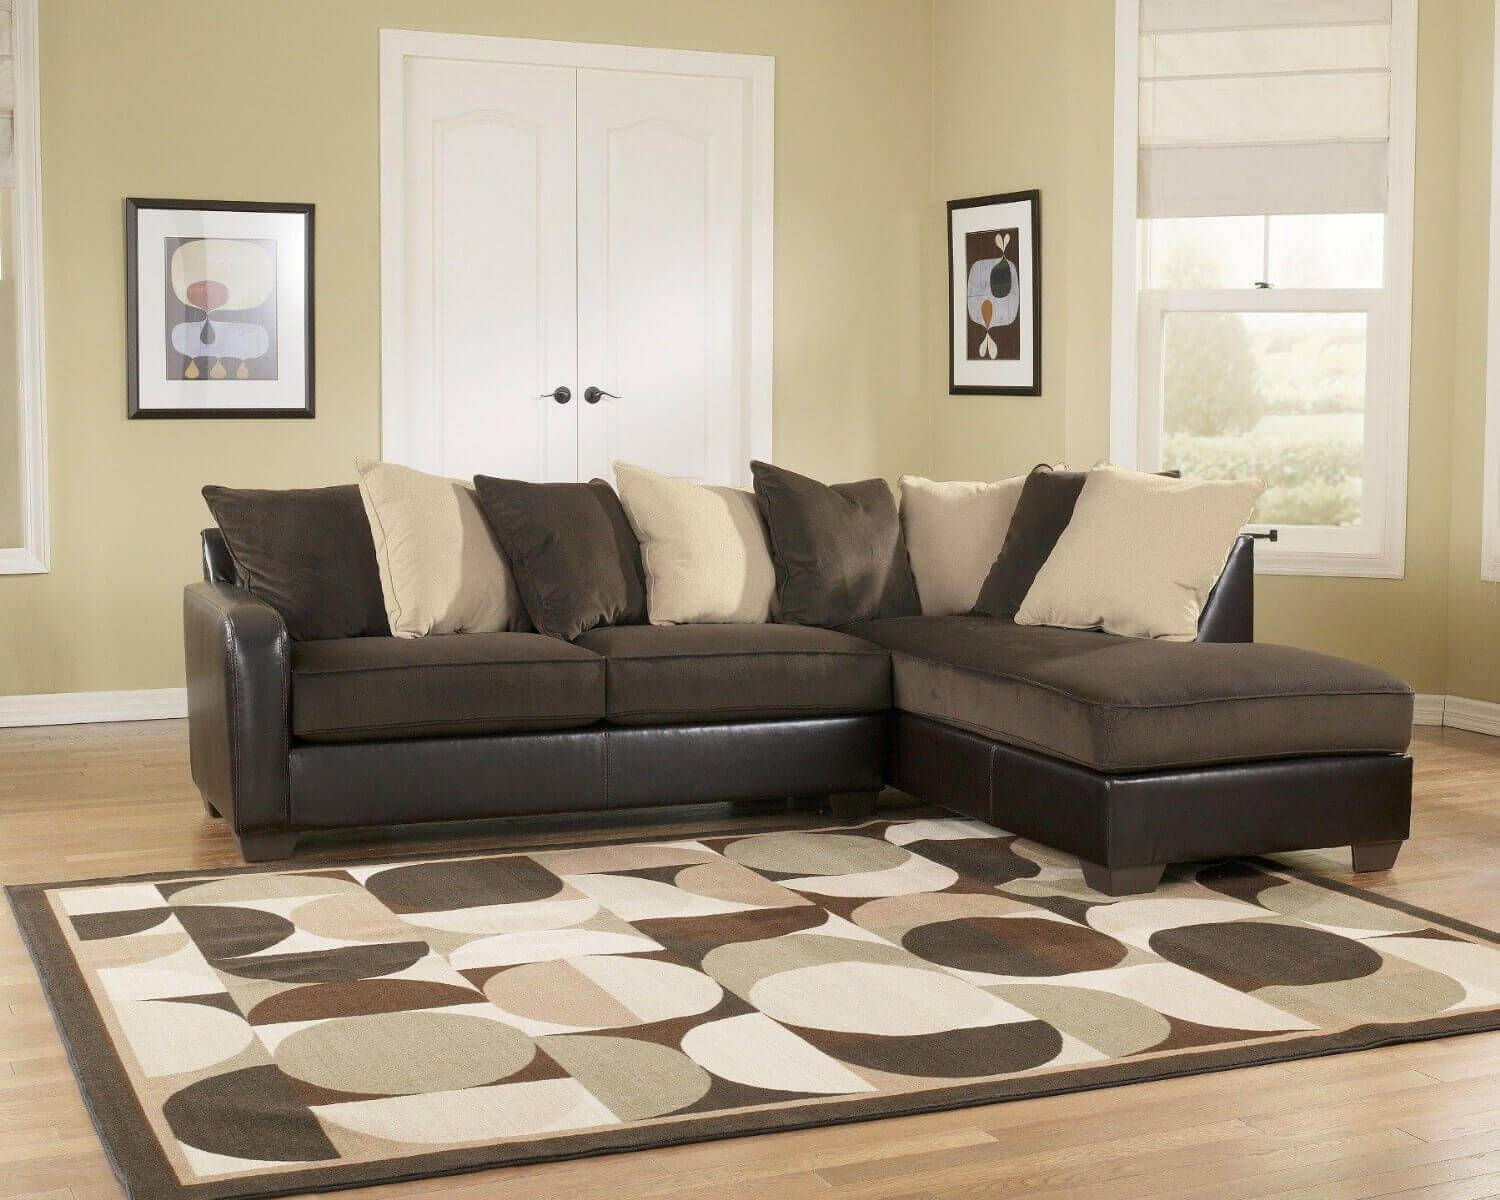 100 Beautiful Sectional Sofas Under $1,000 within 2 Seat Sectional Sofas (Image 2 of 30)